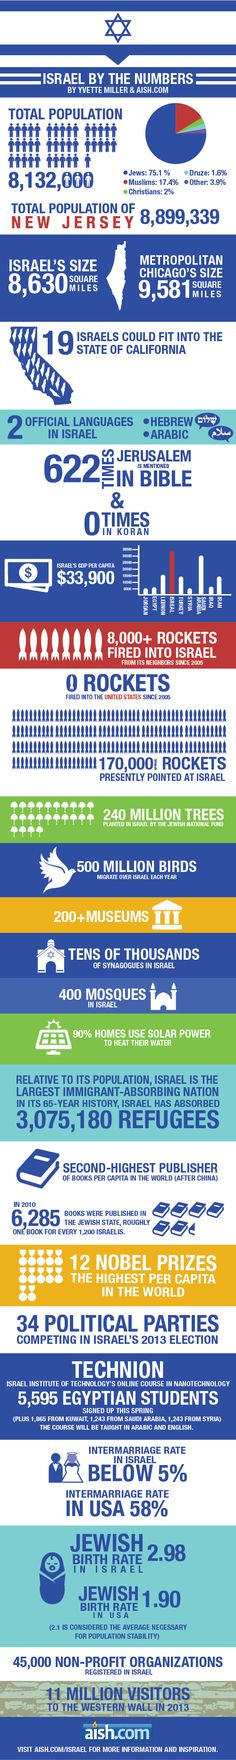 Israel by the Numbers Infographic